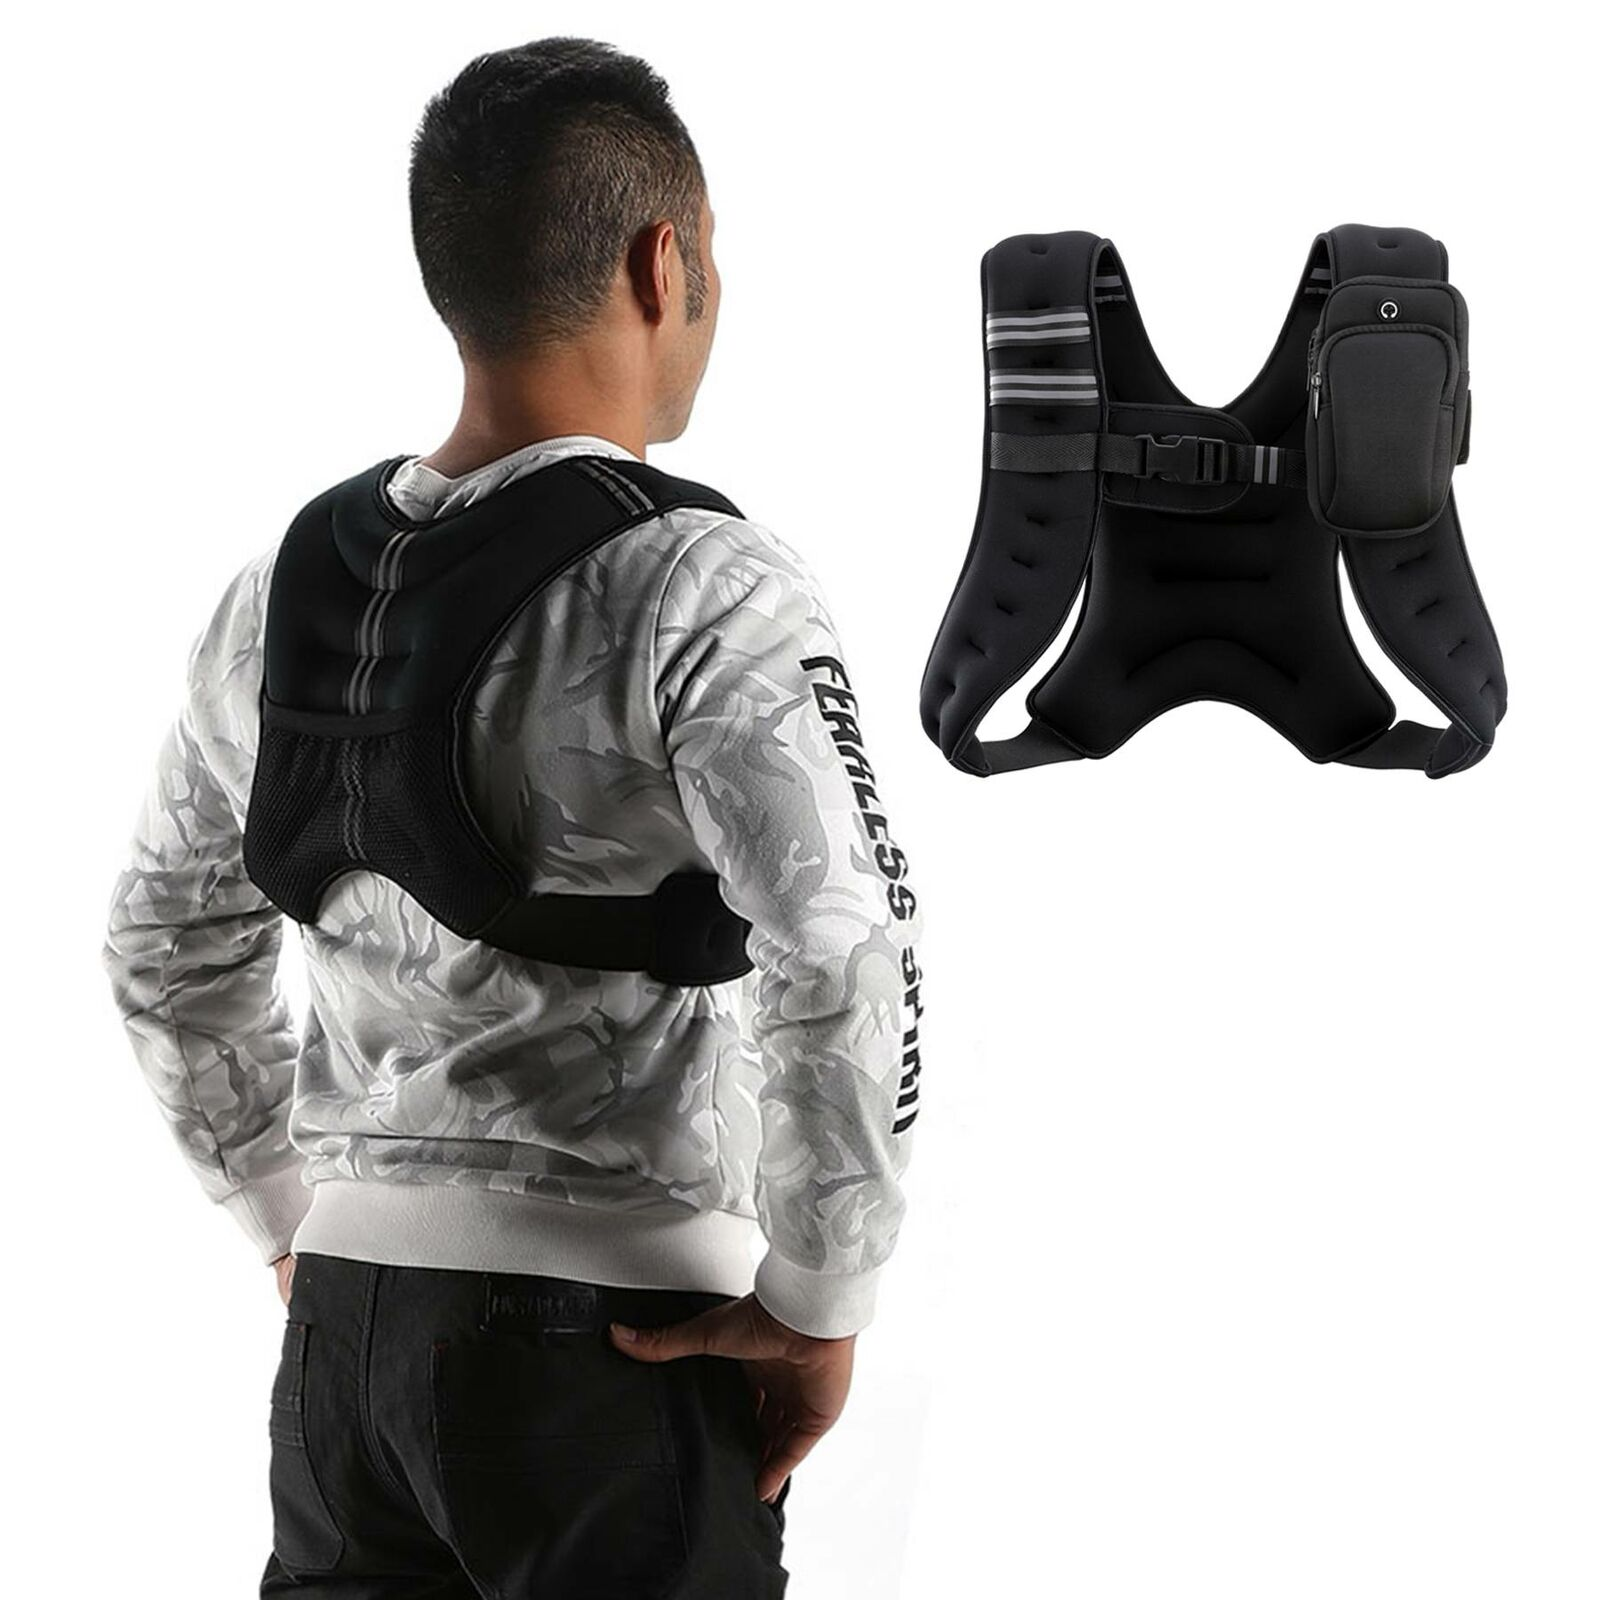 33//77lbs Adjustable Weighted Vest Sport Fitness Training Boxing Exercise